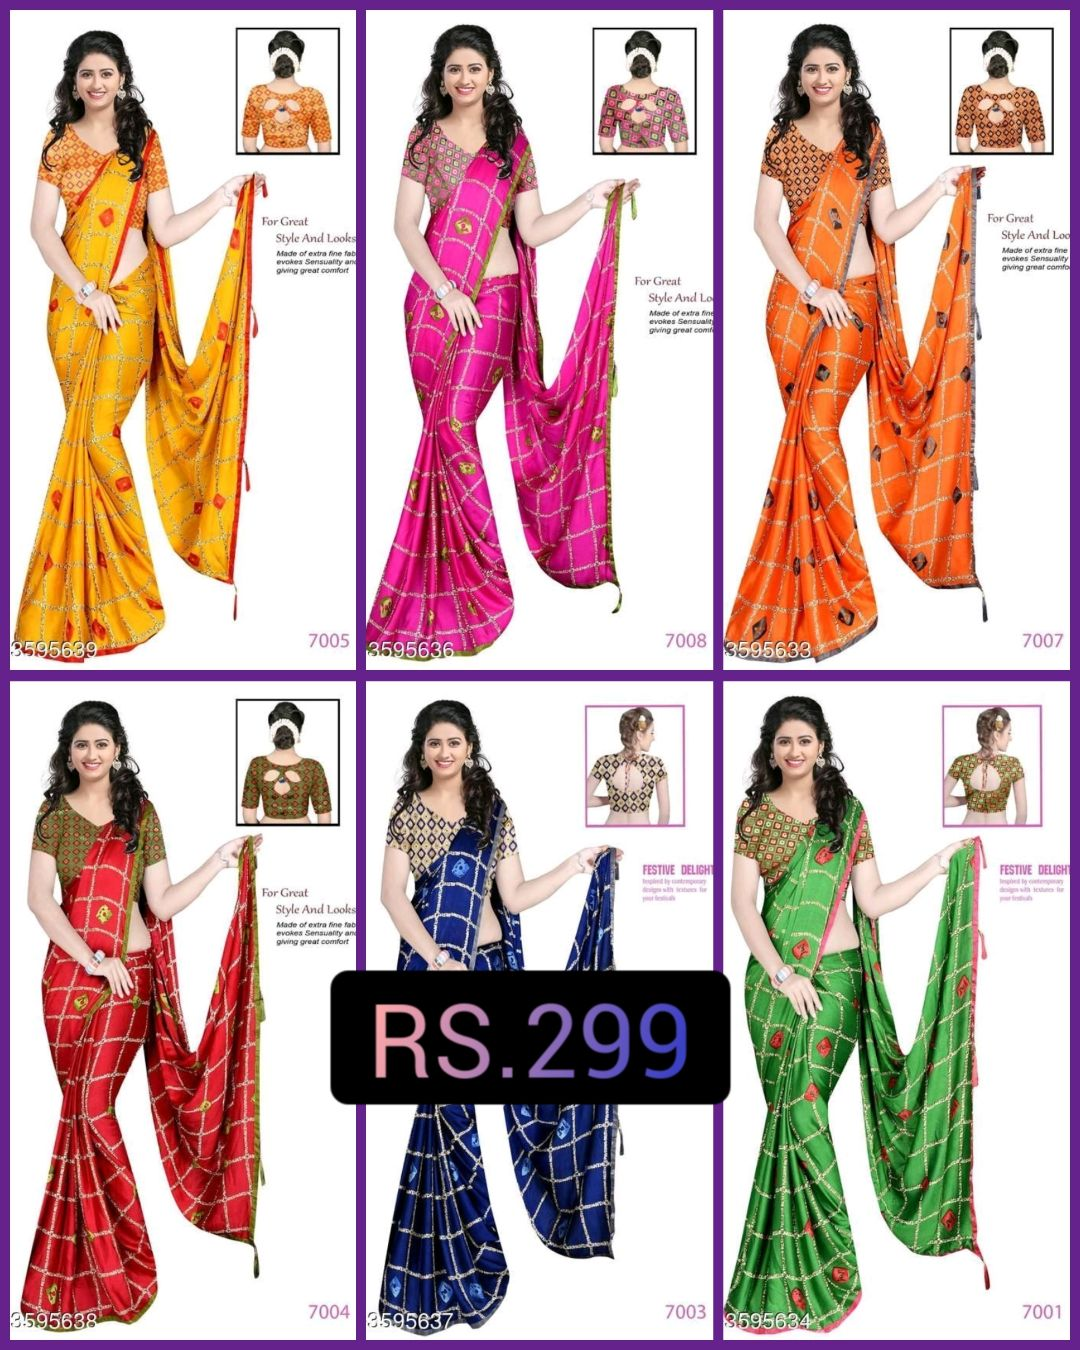 👗 लहँगा/साड़ी/सलवार डिज़ाइन - For Great Style And Looks Made of extra fine fan evokes Sensuality and gwing great comfort For Great Style And Loc Made of extra fine evokes Sensualty giving great comfo For Great Style And Lo Made of extrane evokes Sensual giving great com 3595639 7005 3595636 7008 8595633 7007 FESTIVE DELIGHT FESTIVE DELIGHT For Great Style And Looles Made of extra fine fac evokes Sensity and Owing great comfort RS . 299 3595638 . 595637 7003 3595634 7001 - ShareChat